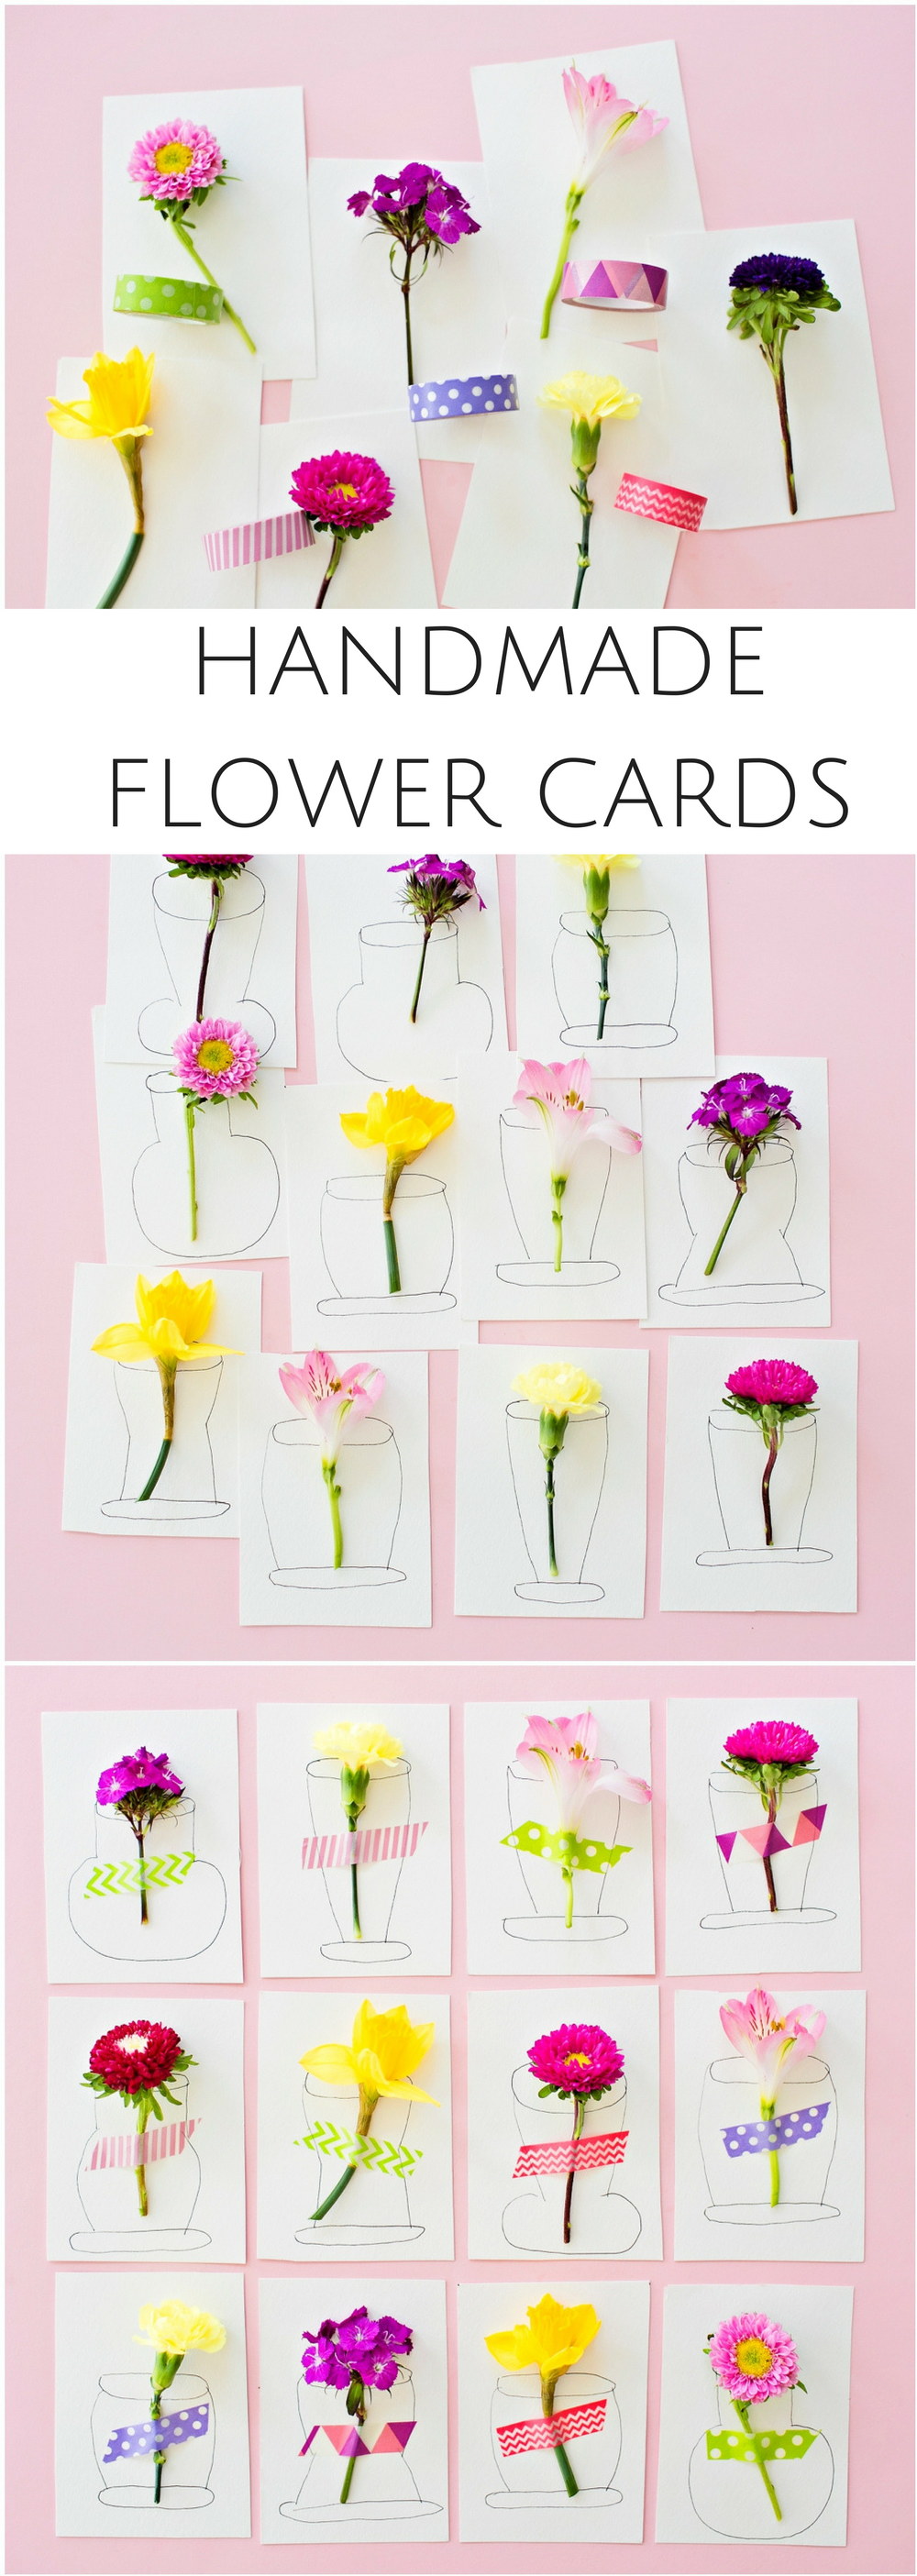 Pretty d flower handmade cards cute diy cards kids can make for